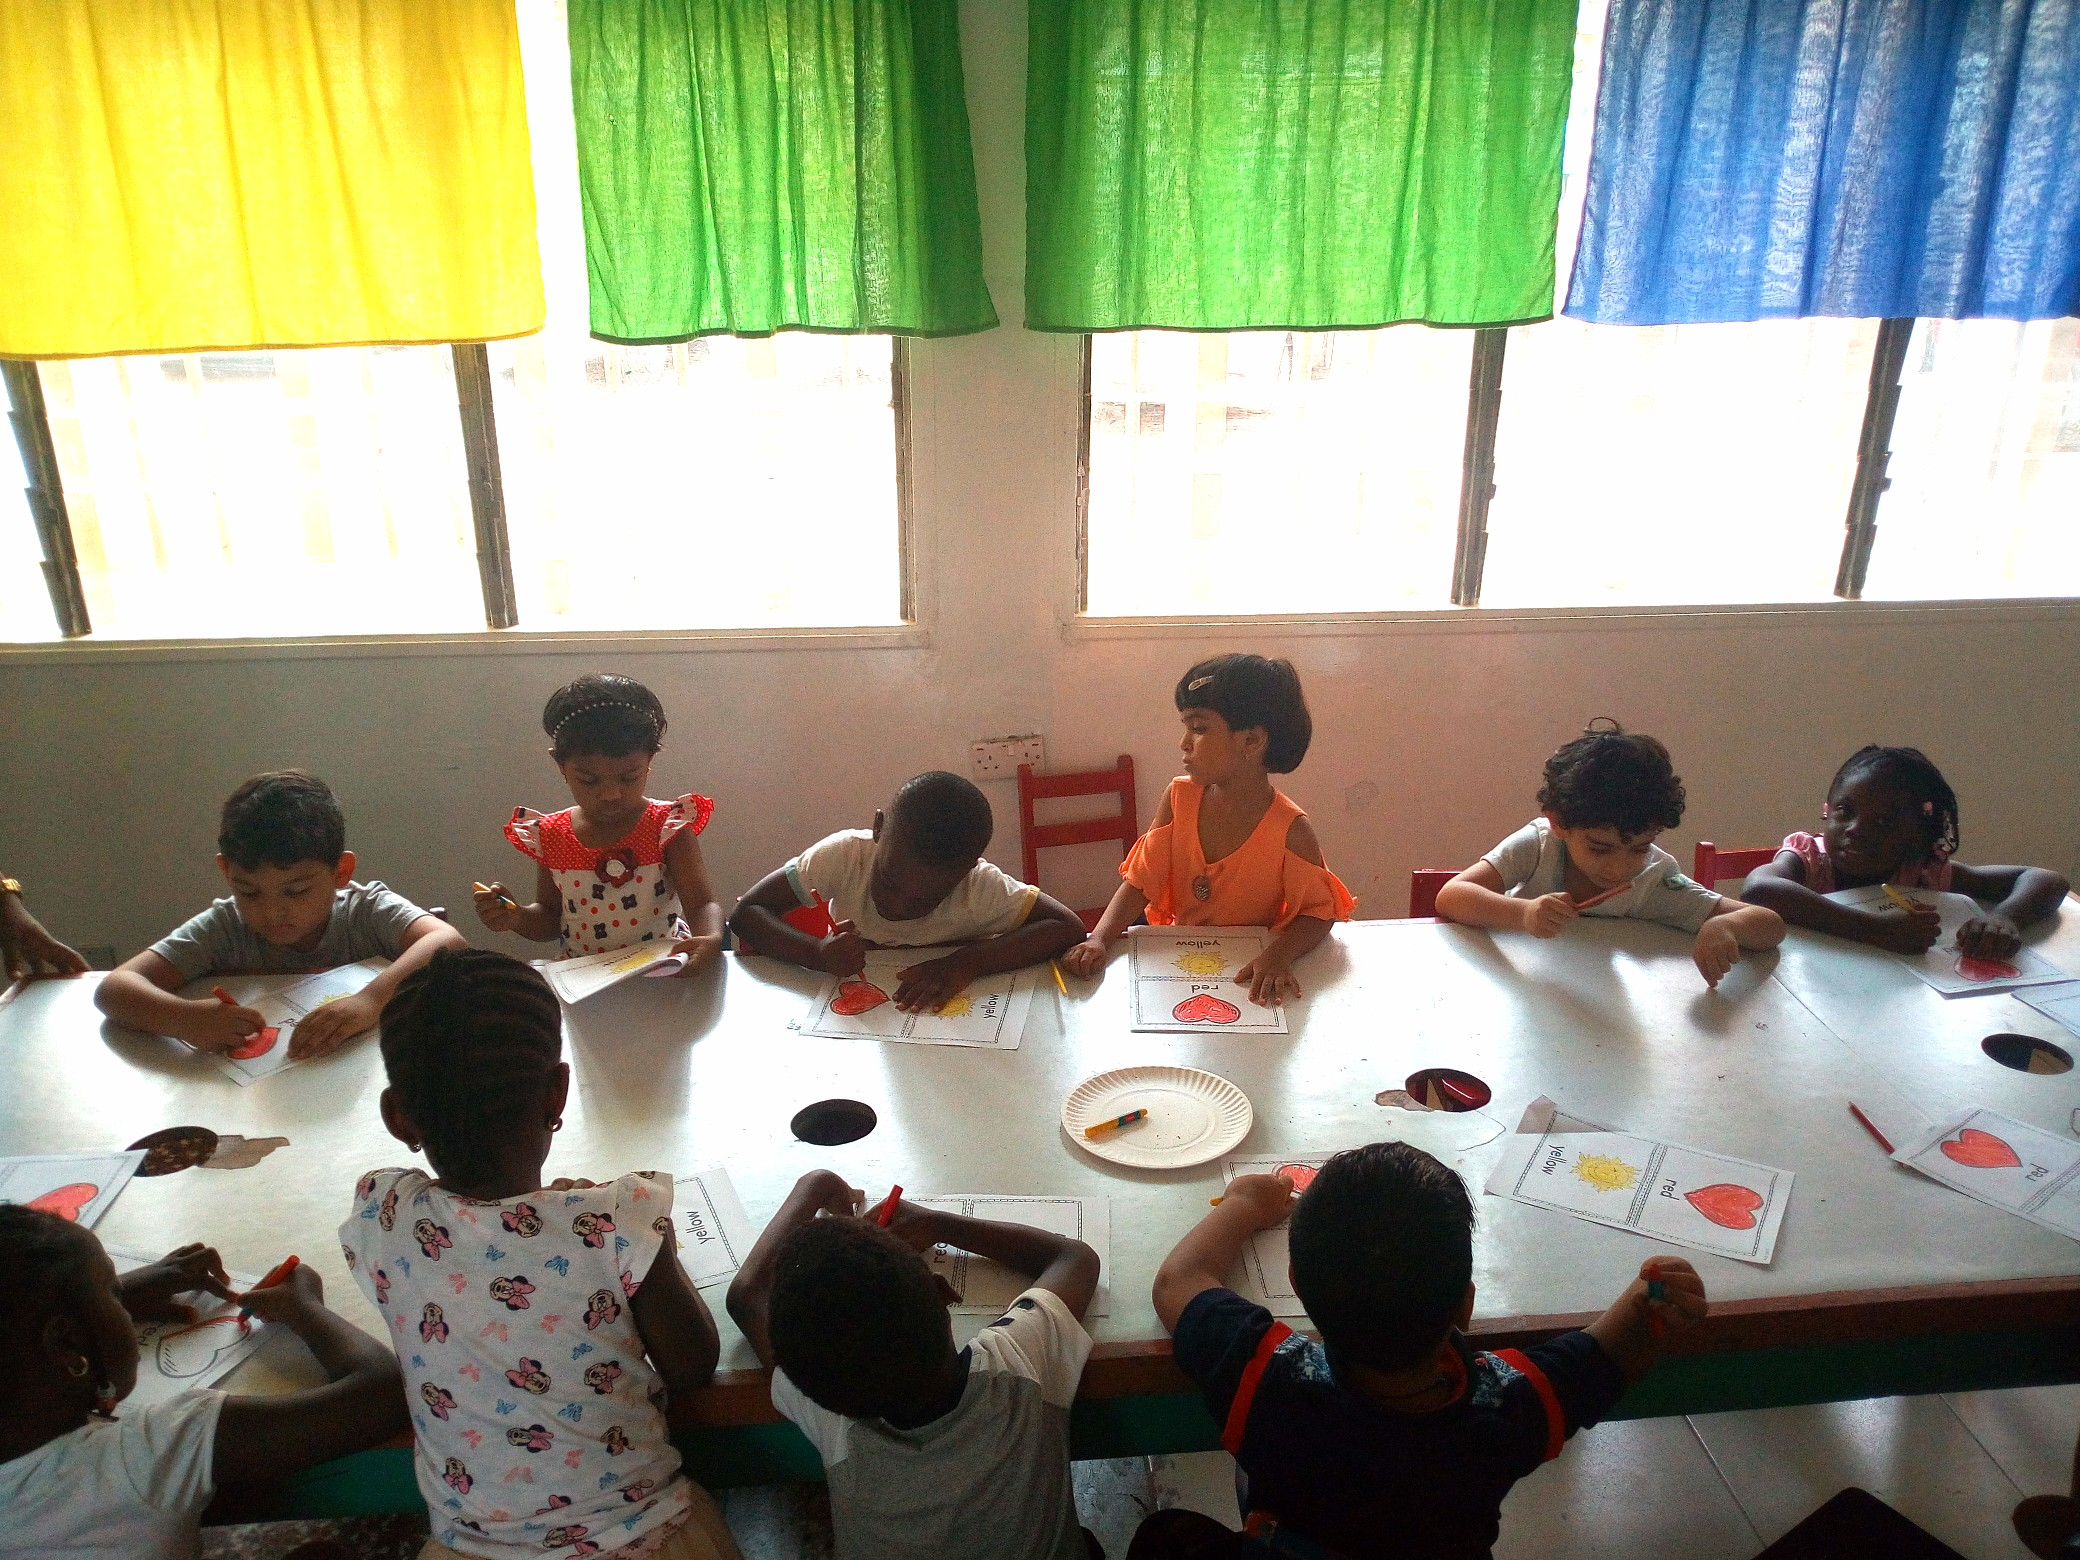 PreKg, working on their book of colors in Art class